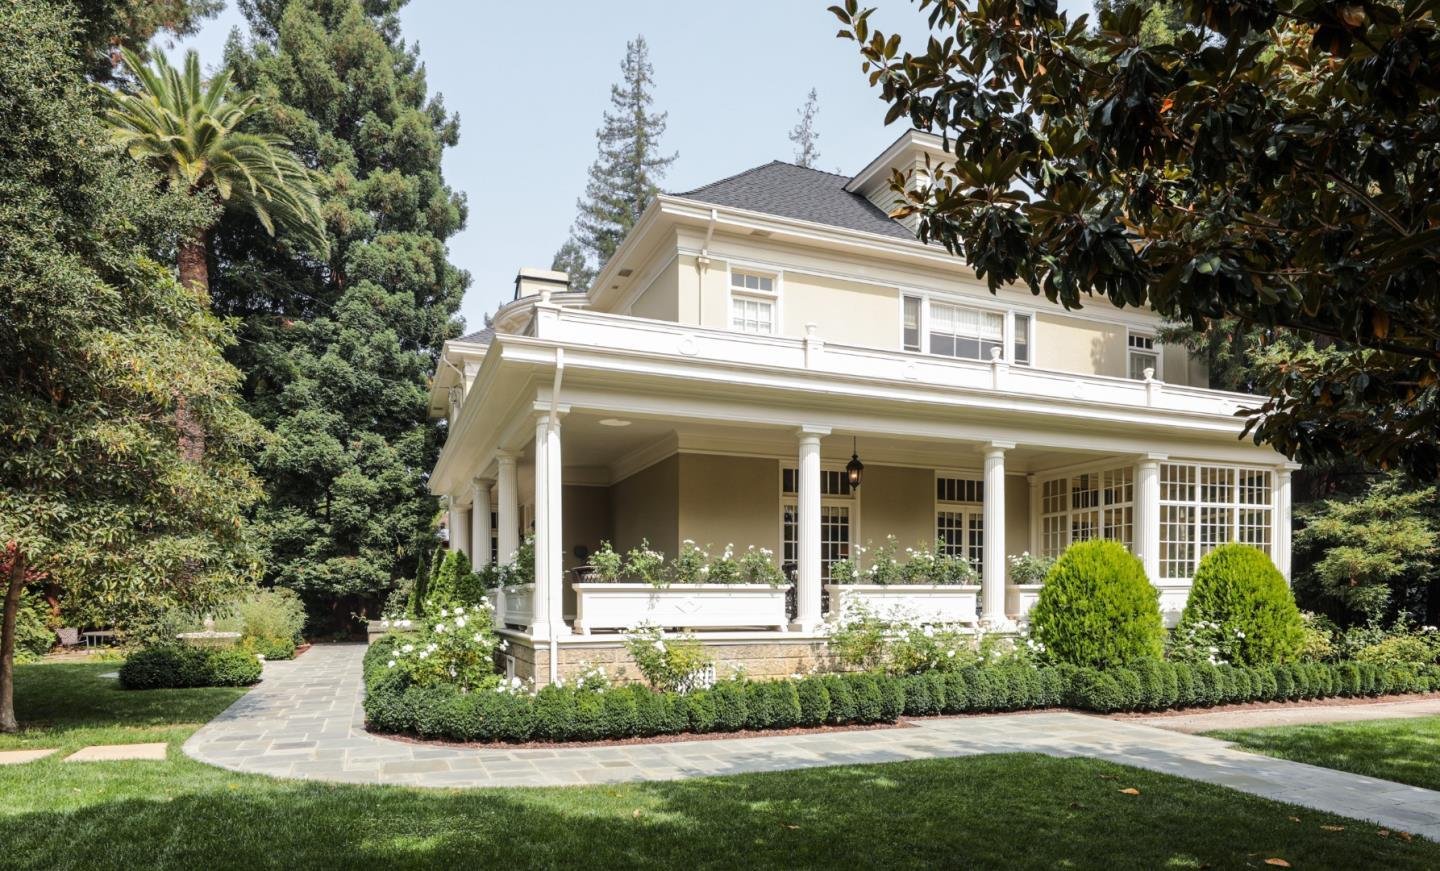 1001 Forest AVE, PALO ALTO, California 94301, 8 Bedrooms Bedrooms, ,5 BathroomsBathrooms,Residential,For Sale,1001 Forest AVE,ML81831175